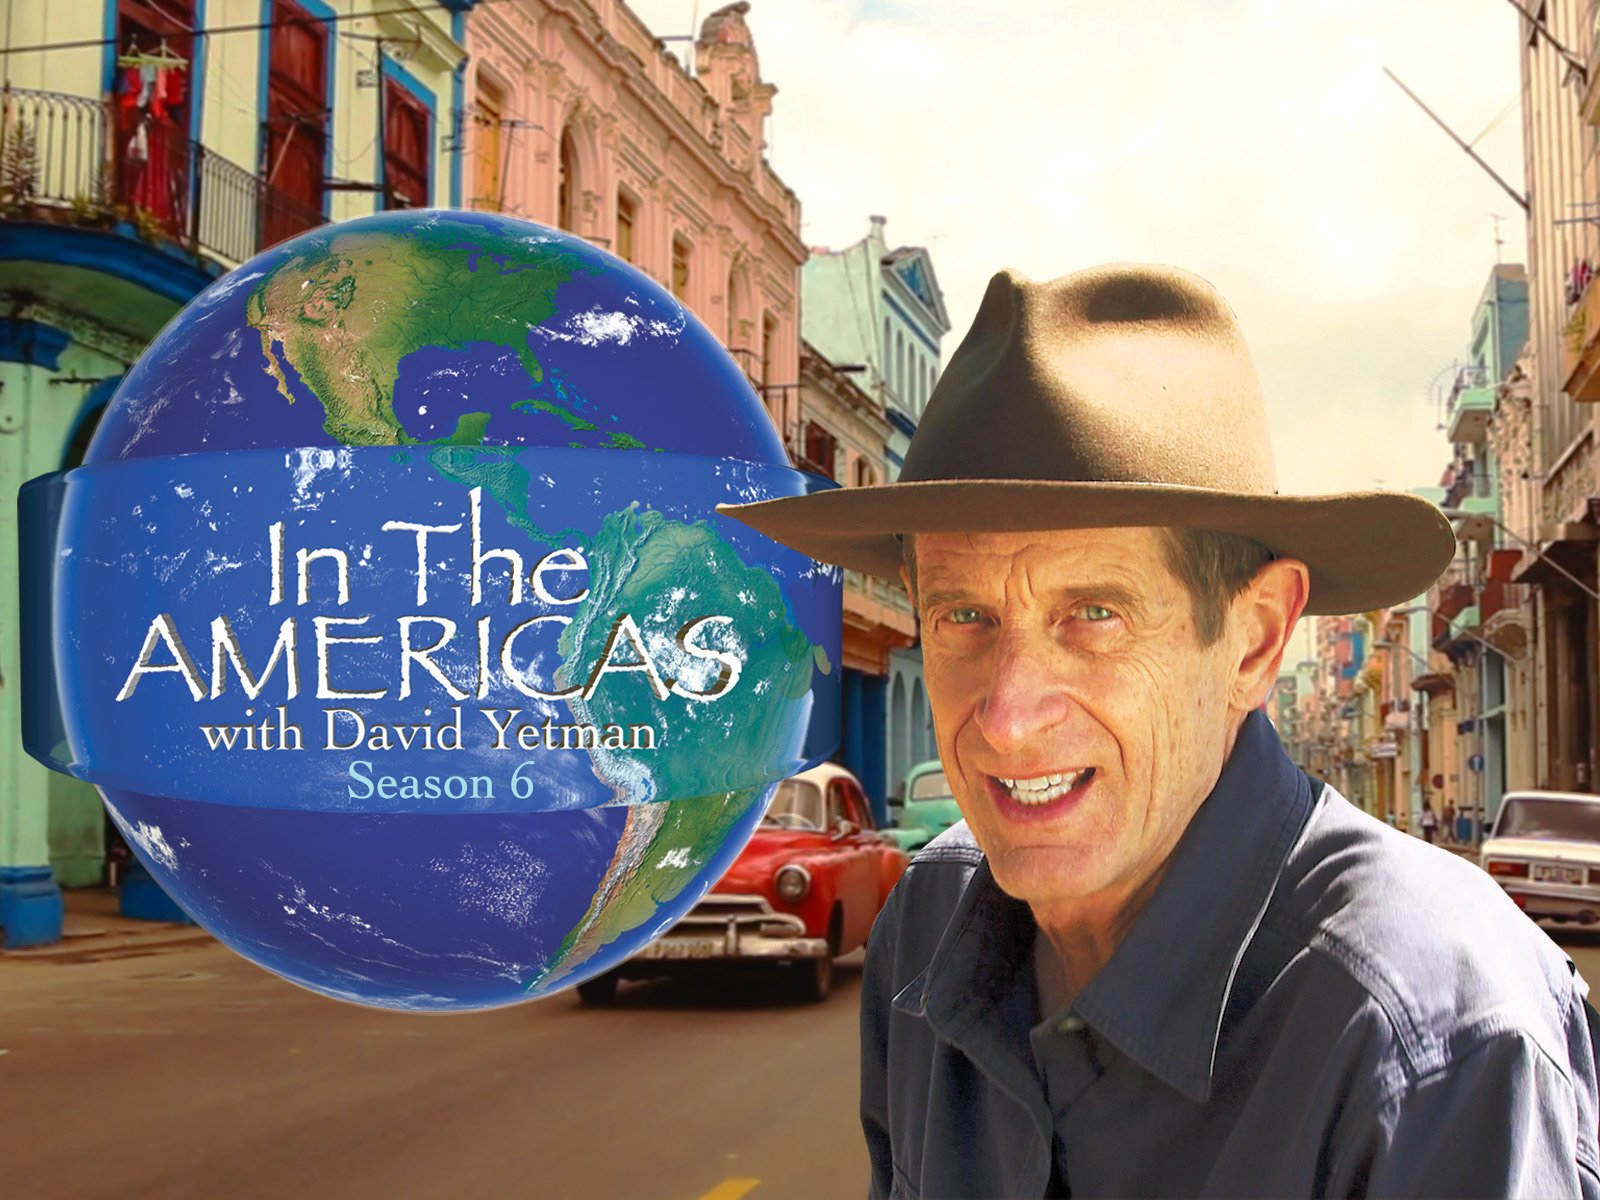 In the Americas with David Yetman - Season 6